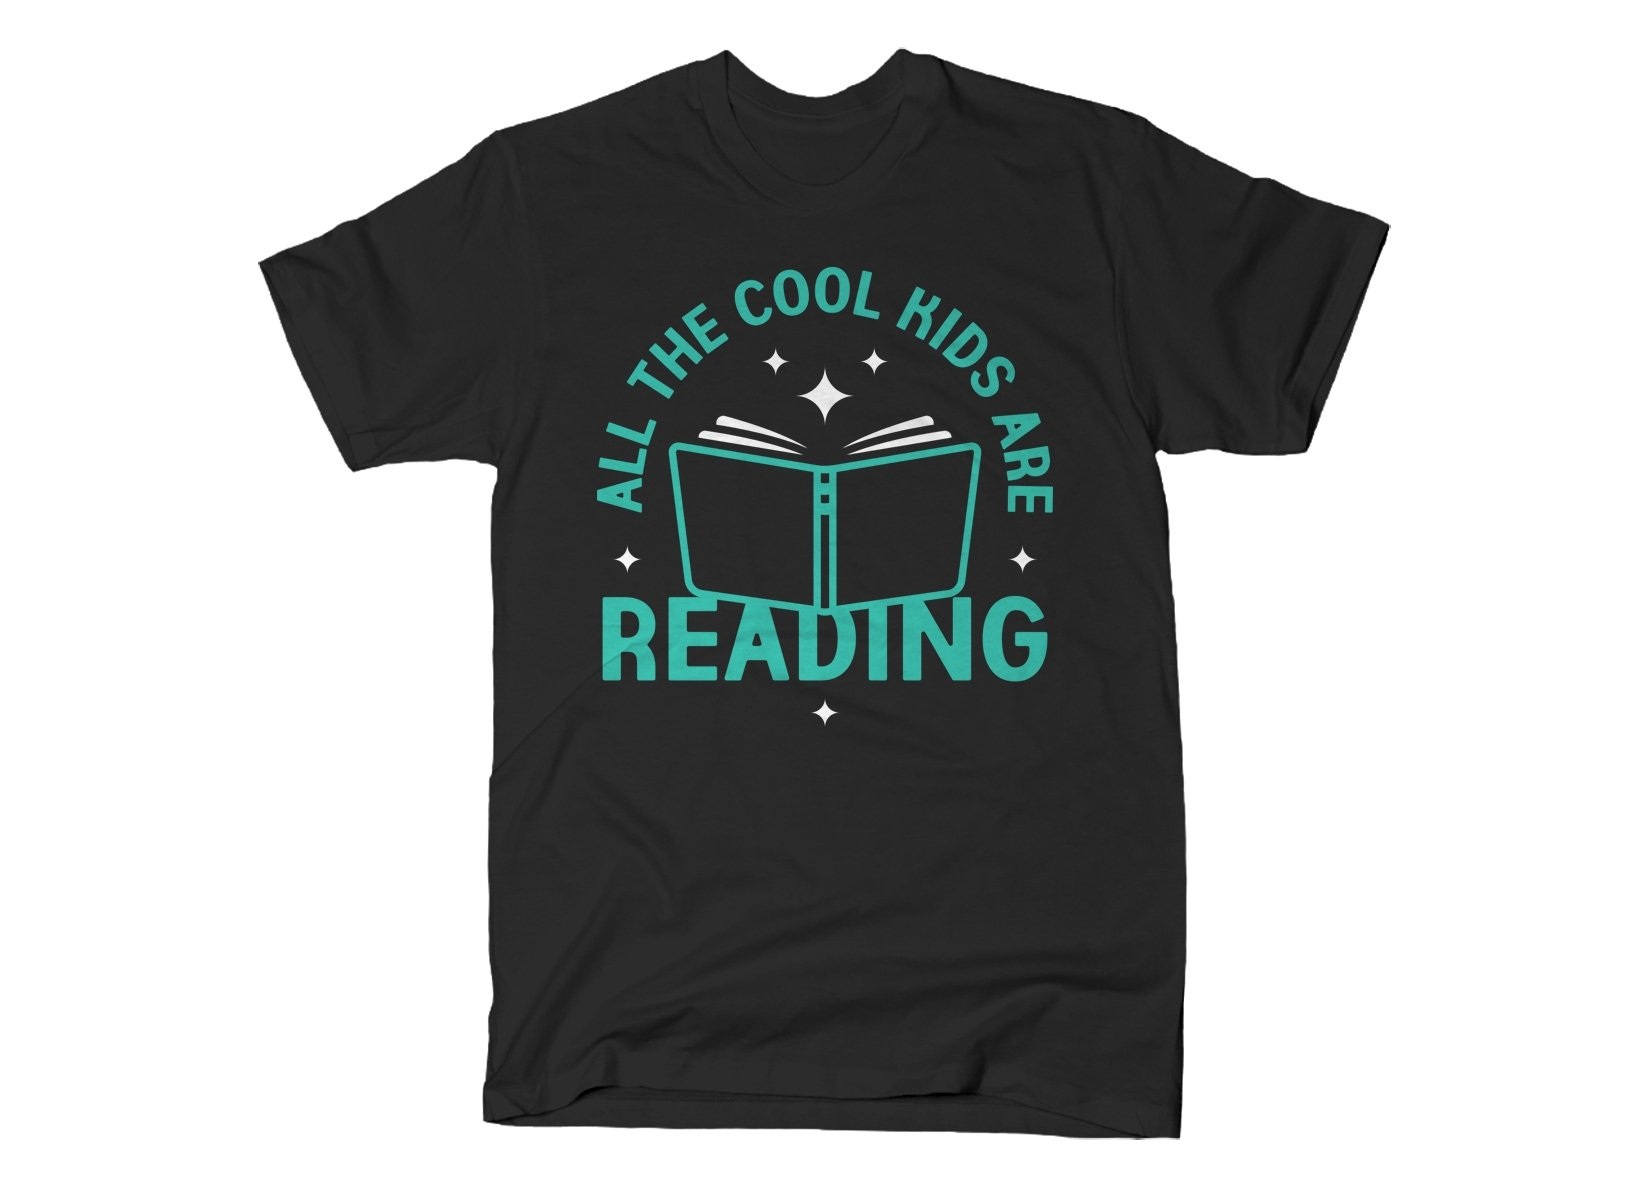 All The Cool Kids Are Reading on Mens T-Shirt